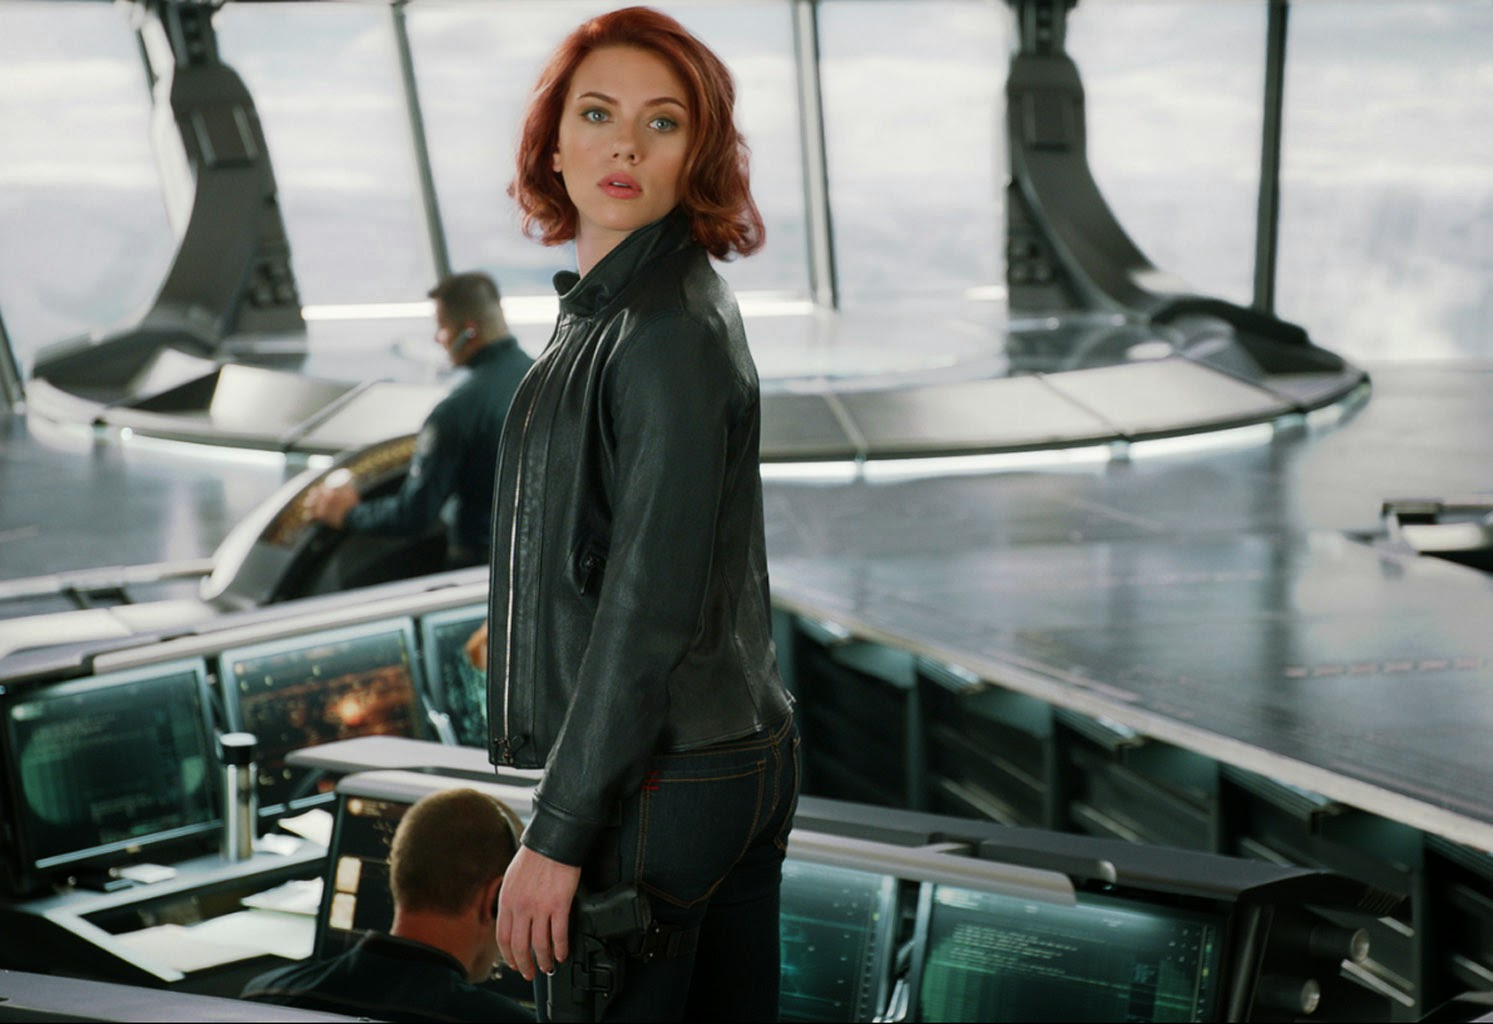 Black Widow Natasha Romanoff on Pinterest Natasha  - natasha romanoff black widow wallpapers